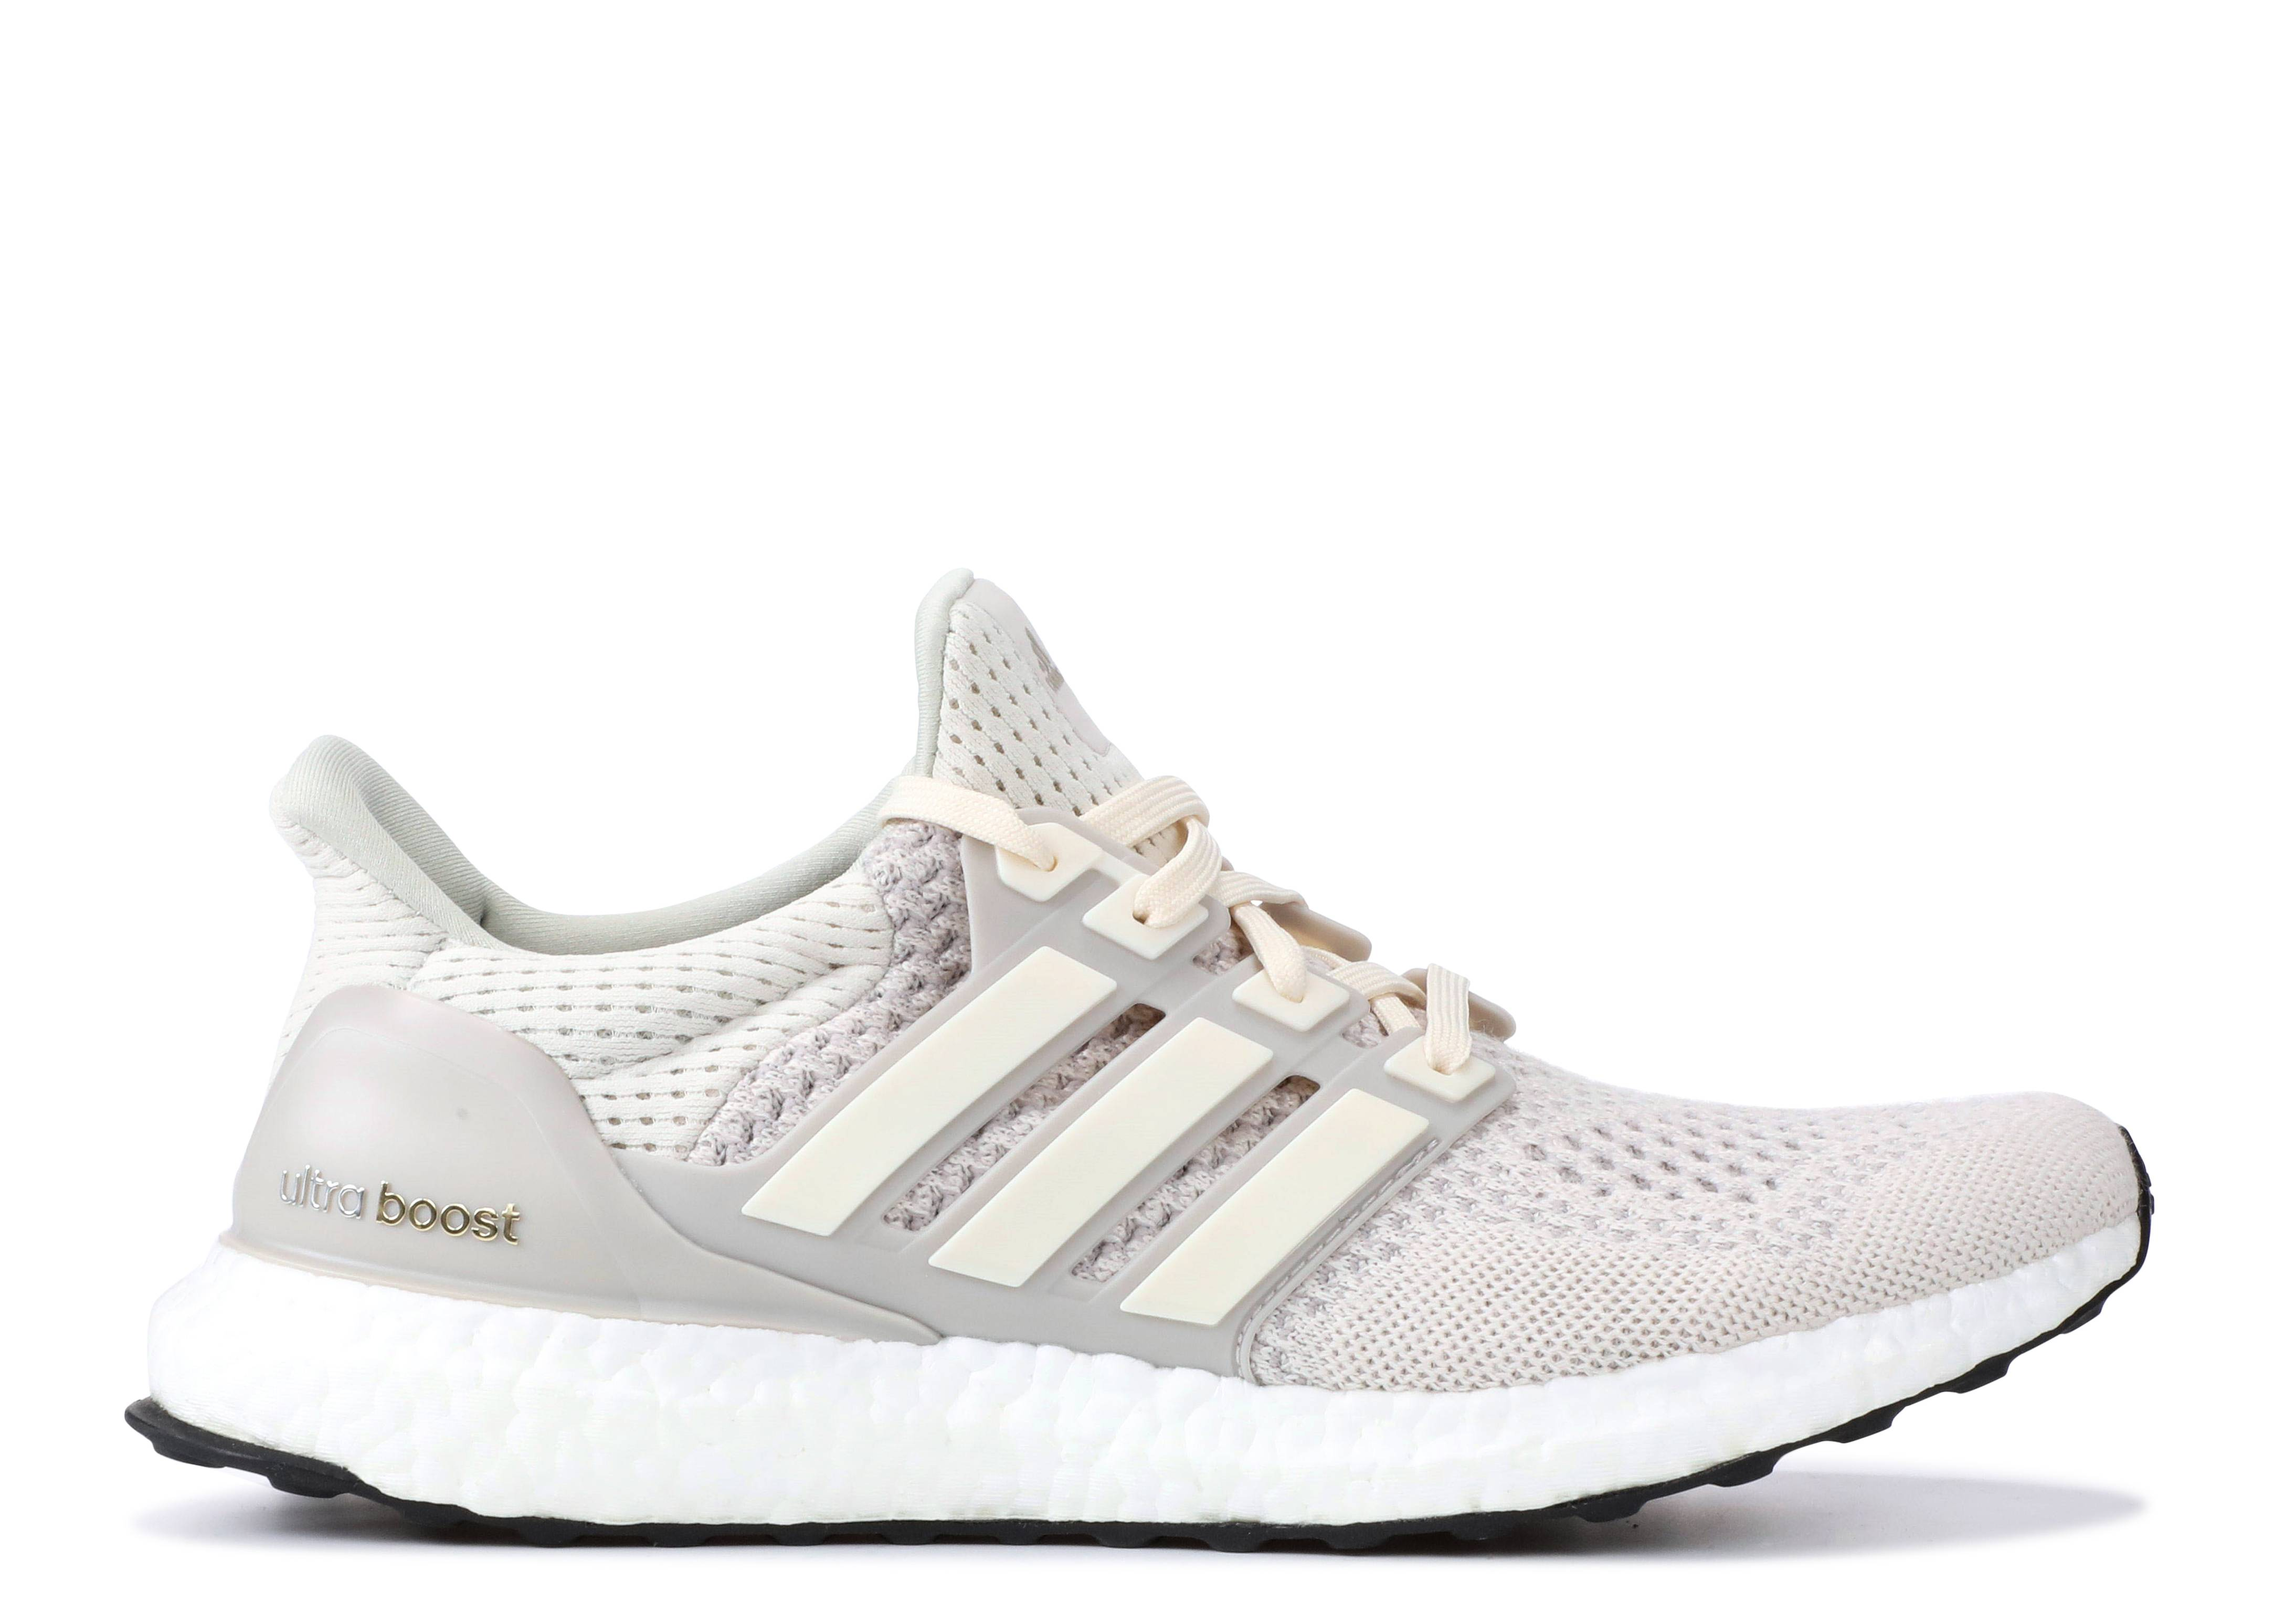 7e89d80fd8a Ultra Boost Ltd